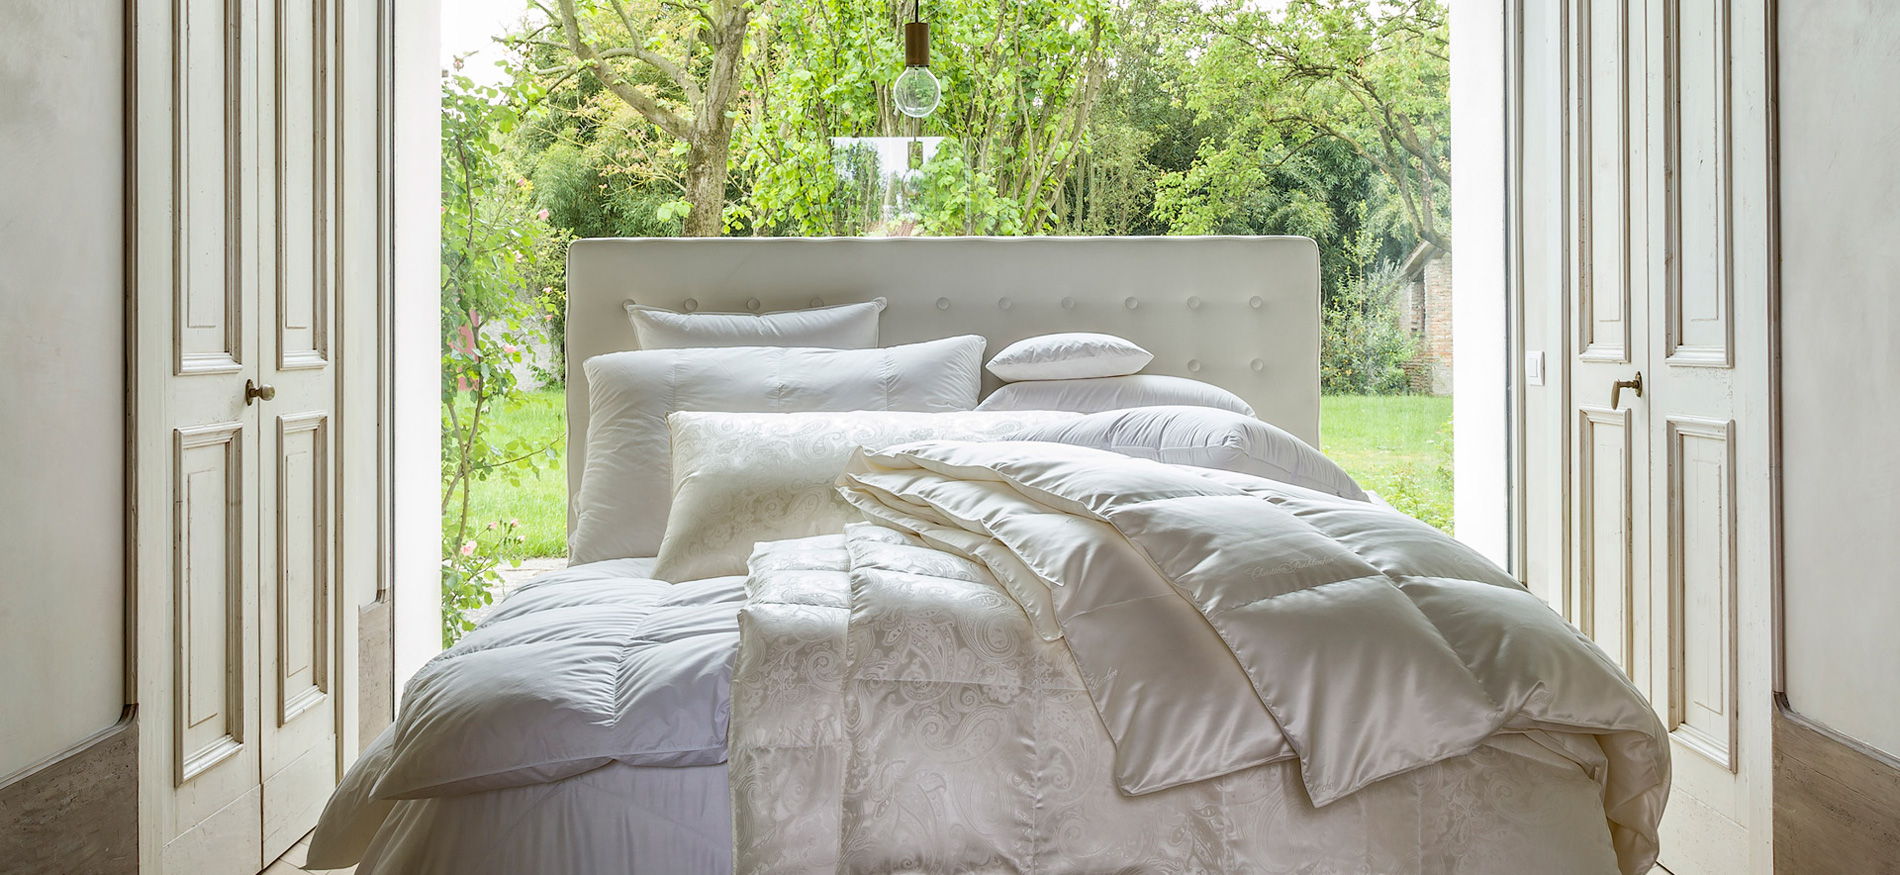 Premium Duvets from our selected manufactures for a refreshing bedtime